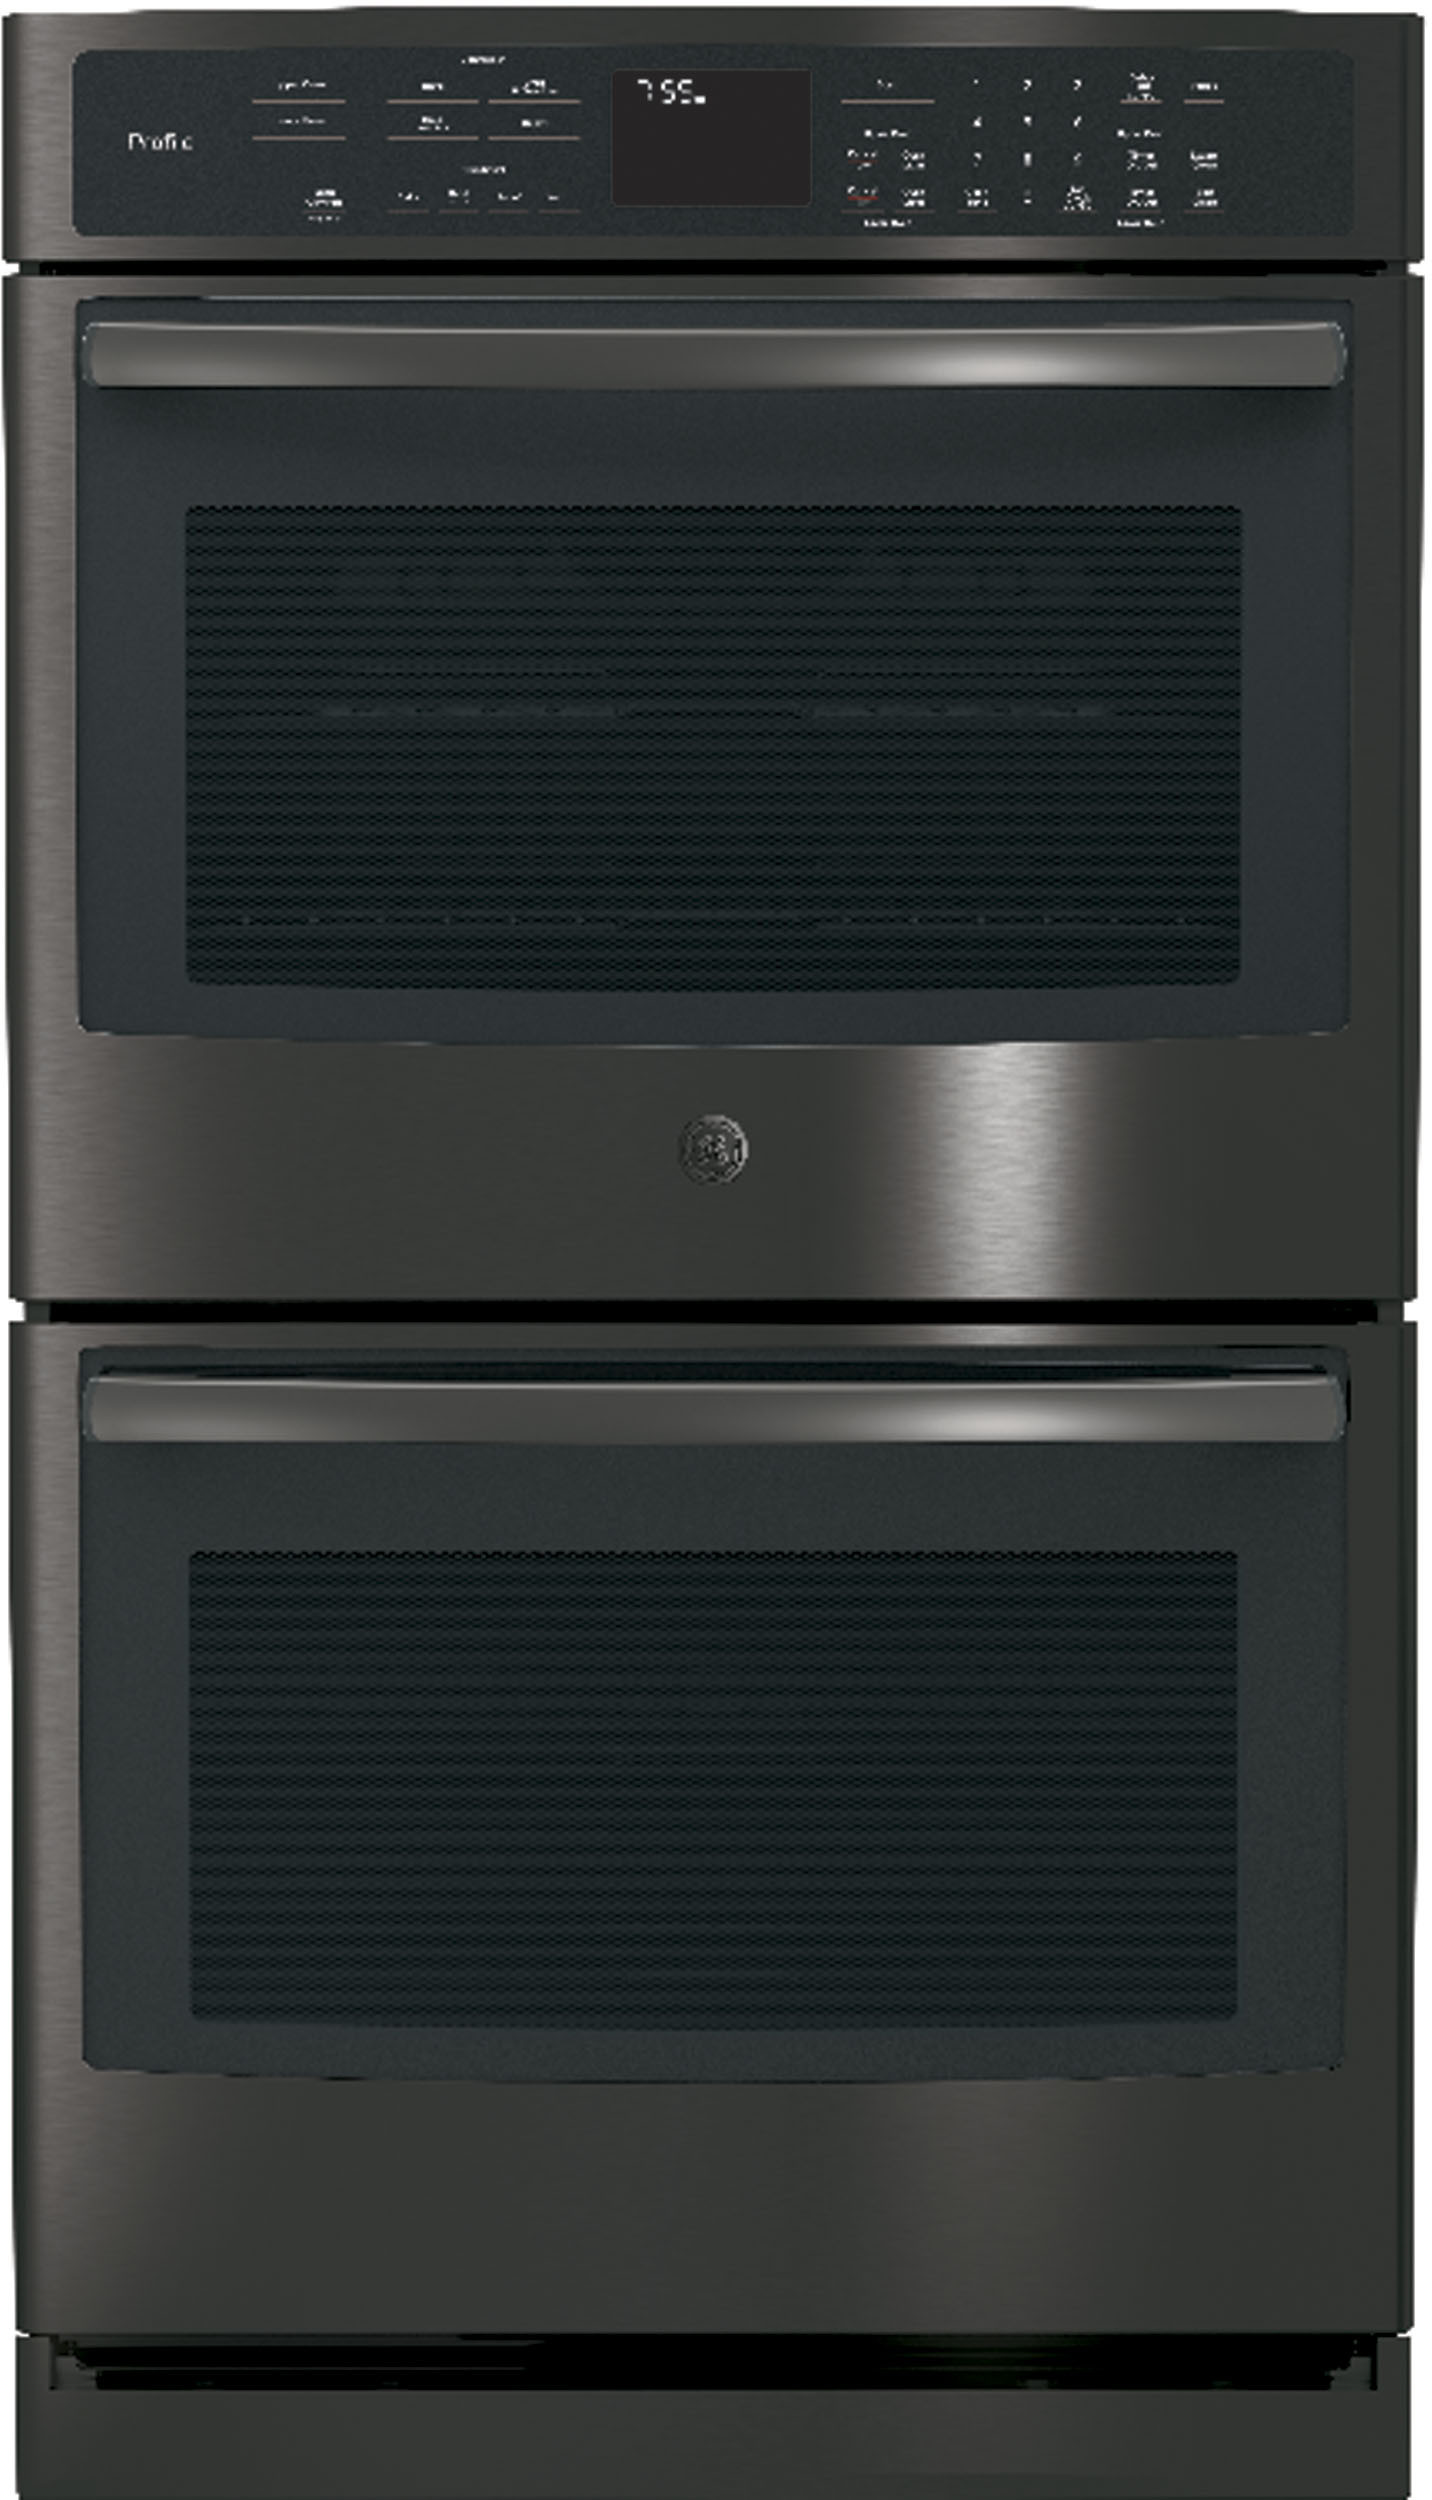 Ge Pt7550blts 30 Inch Double Electric Wall Oven With True